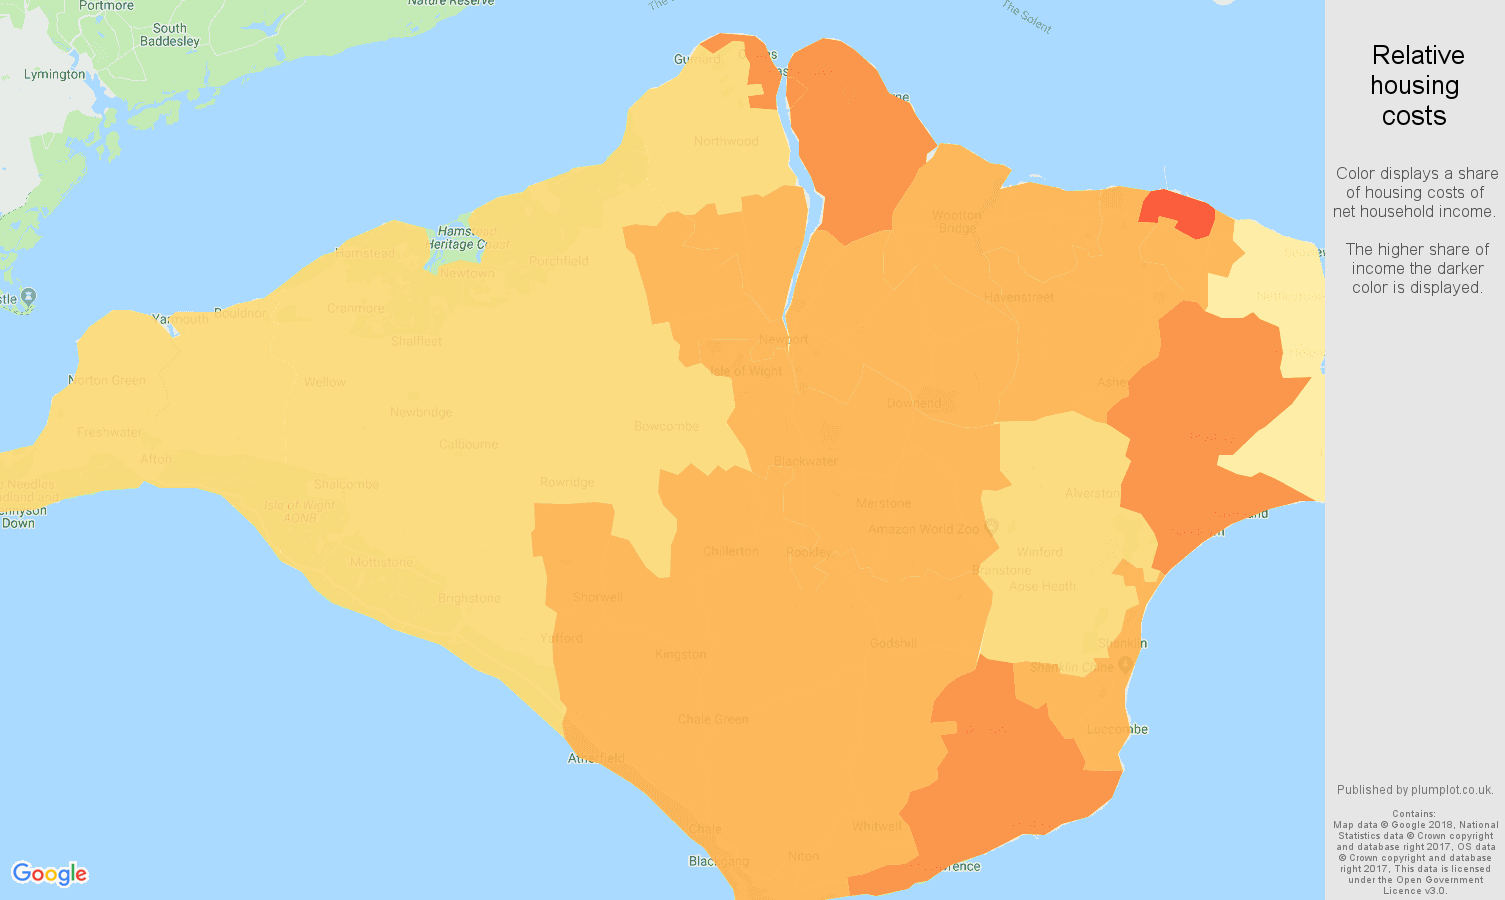 Isle of Wight relative housing costs map